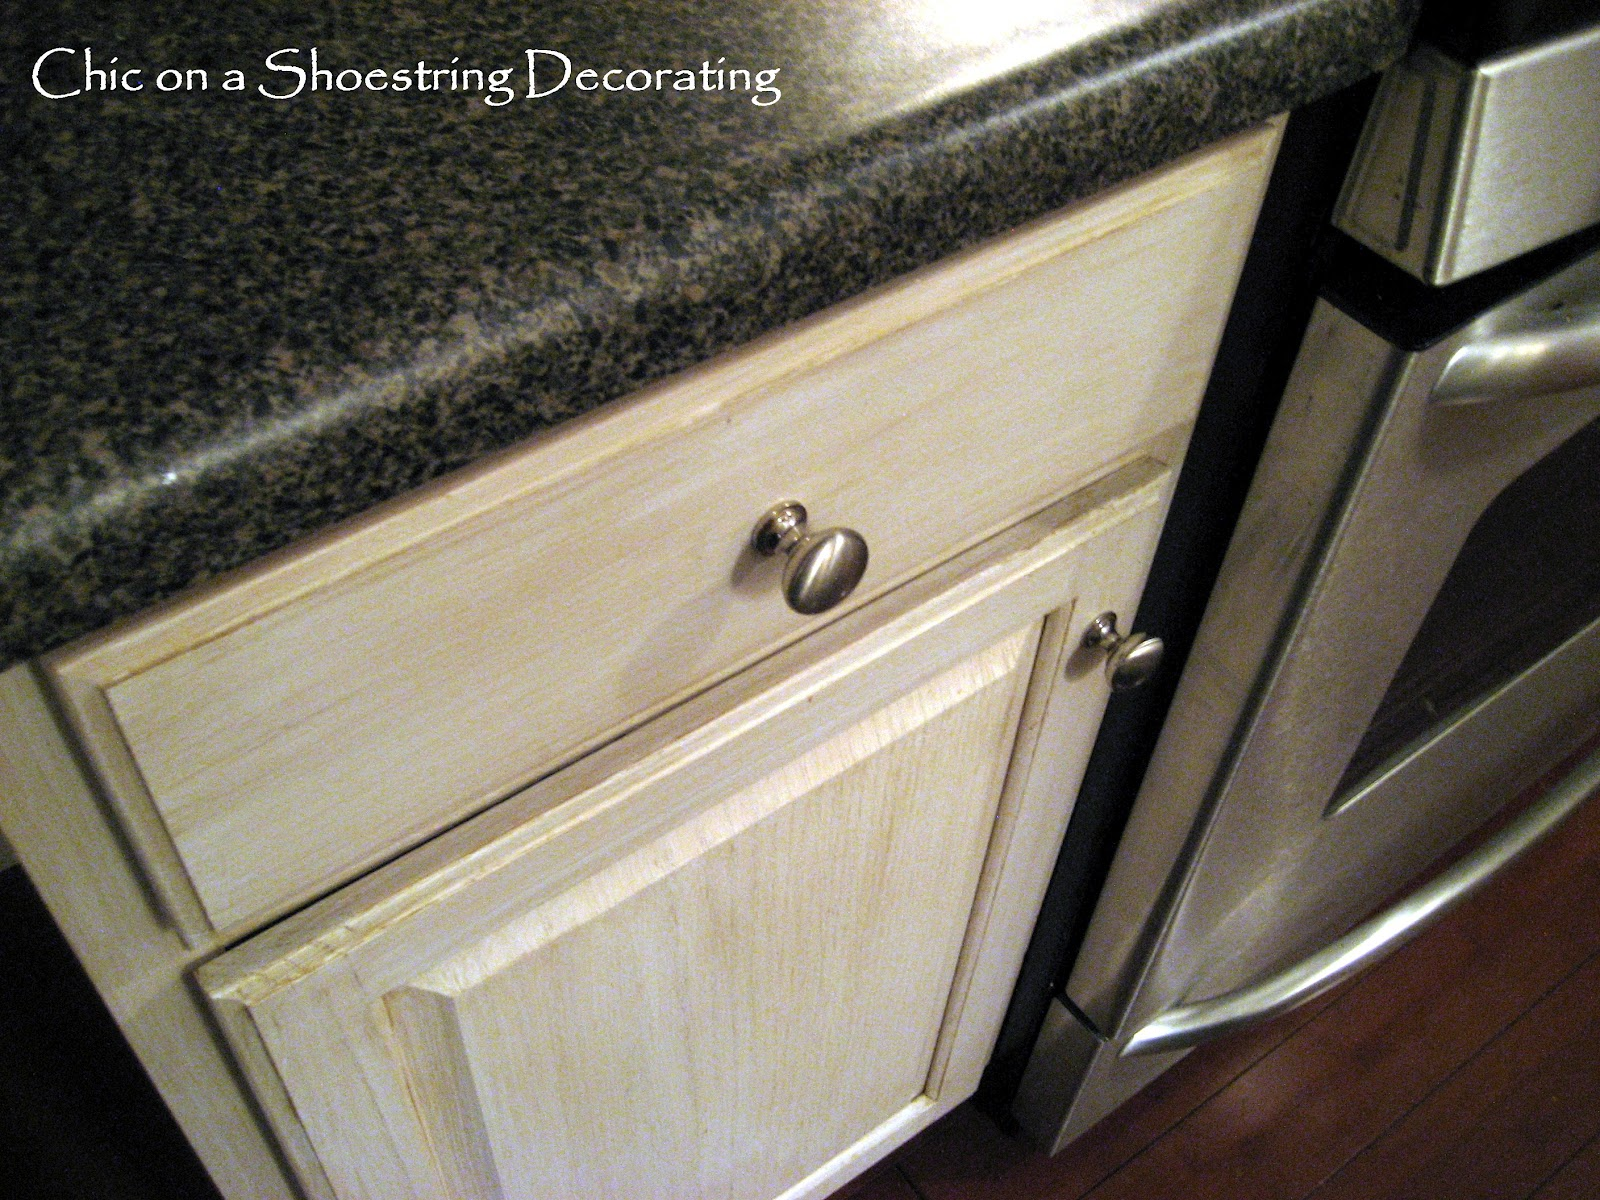 Chic on a shoestring decorating how to change your - Kitchen cabinets with handles ...